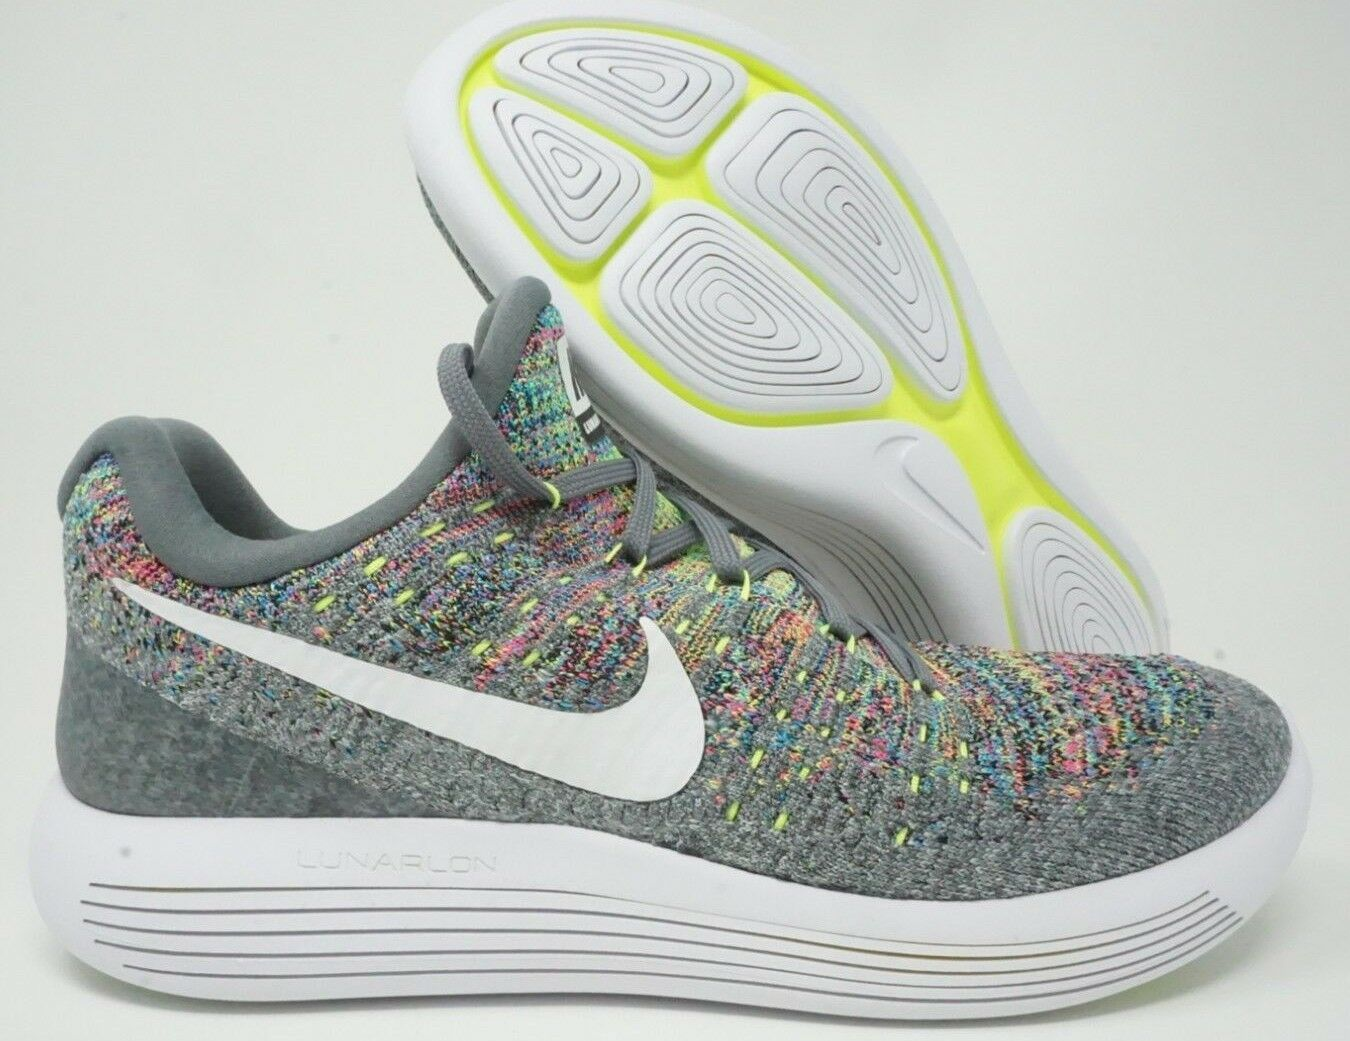 Nike Lunarepic Low Flyknit 2 Mens Running shoes Cool Grey White Size 9